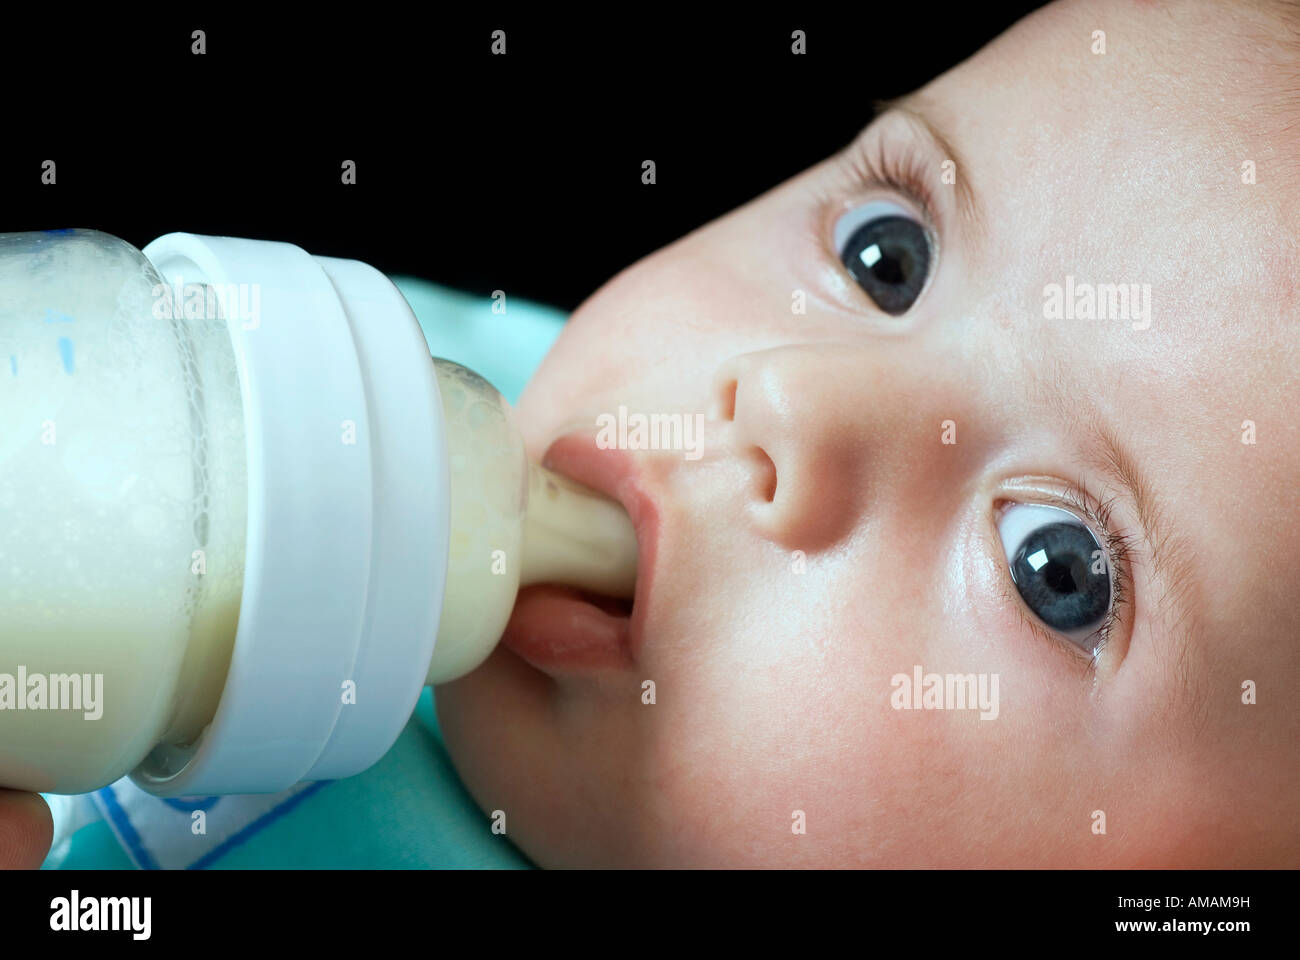 A baby drinking from a bottle - Stock Image